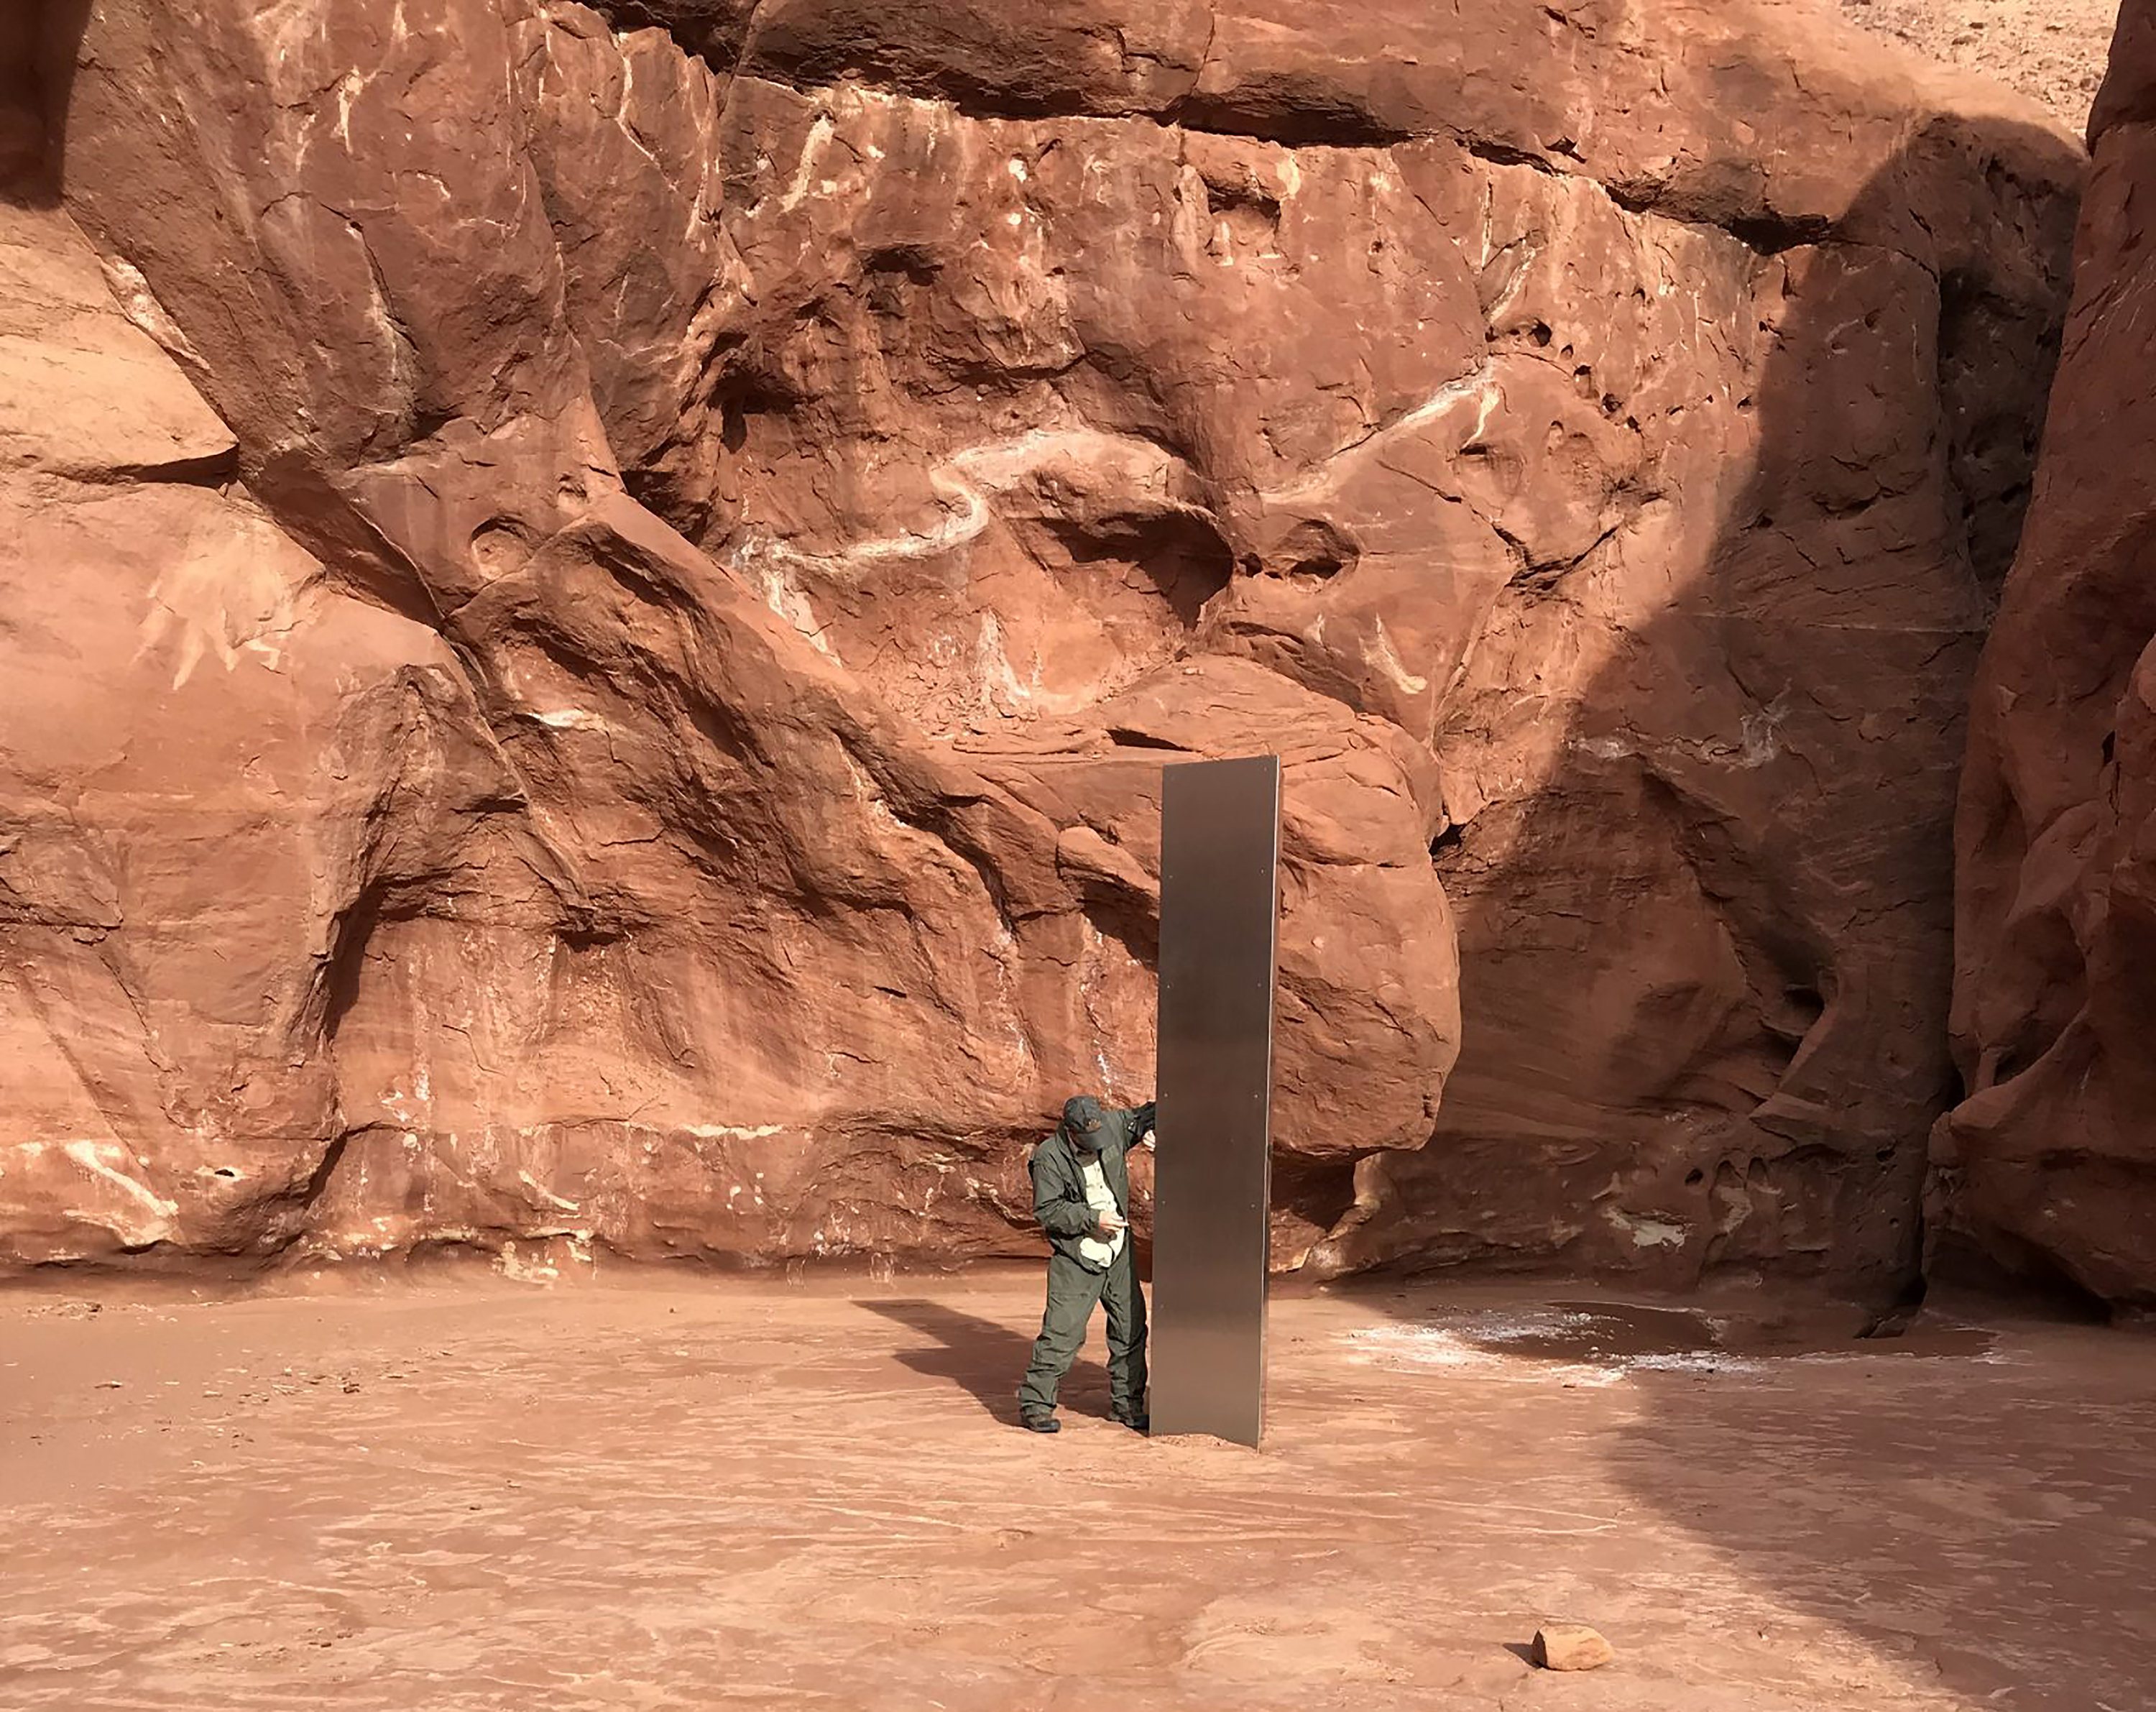 In this Nov. 18, 2020, file photo provided by the Utah Department of Public Safety, a Utah state worker stands next to a metal monolith in the ground in a remote area of red rock in Utah. The mysterious silver monolith that was placed in the Utah desert has disappeared less than 10 days after it was spotted by wildlife biologists performing a helicopter survey of bighorn sheep, federal officials and witnesses said. The Bureau of Land Management said it had received credible reports that the three-sided stainless steel structure was removed on Nov. 27.  (Utah Department of Public Safety via AP, File)